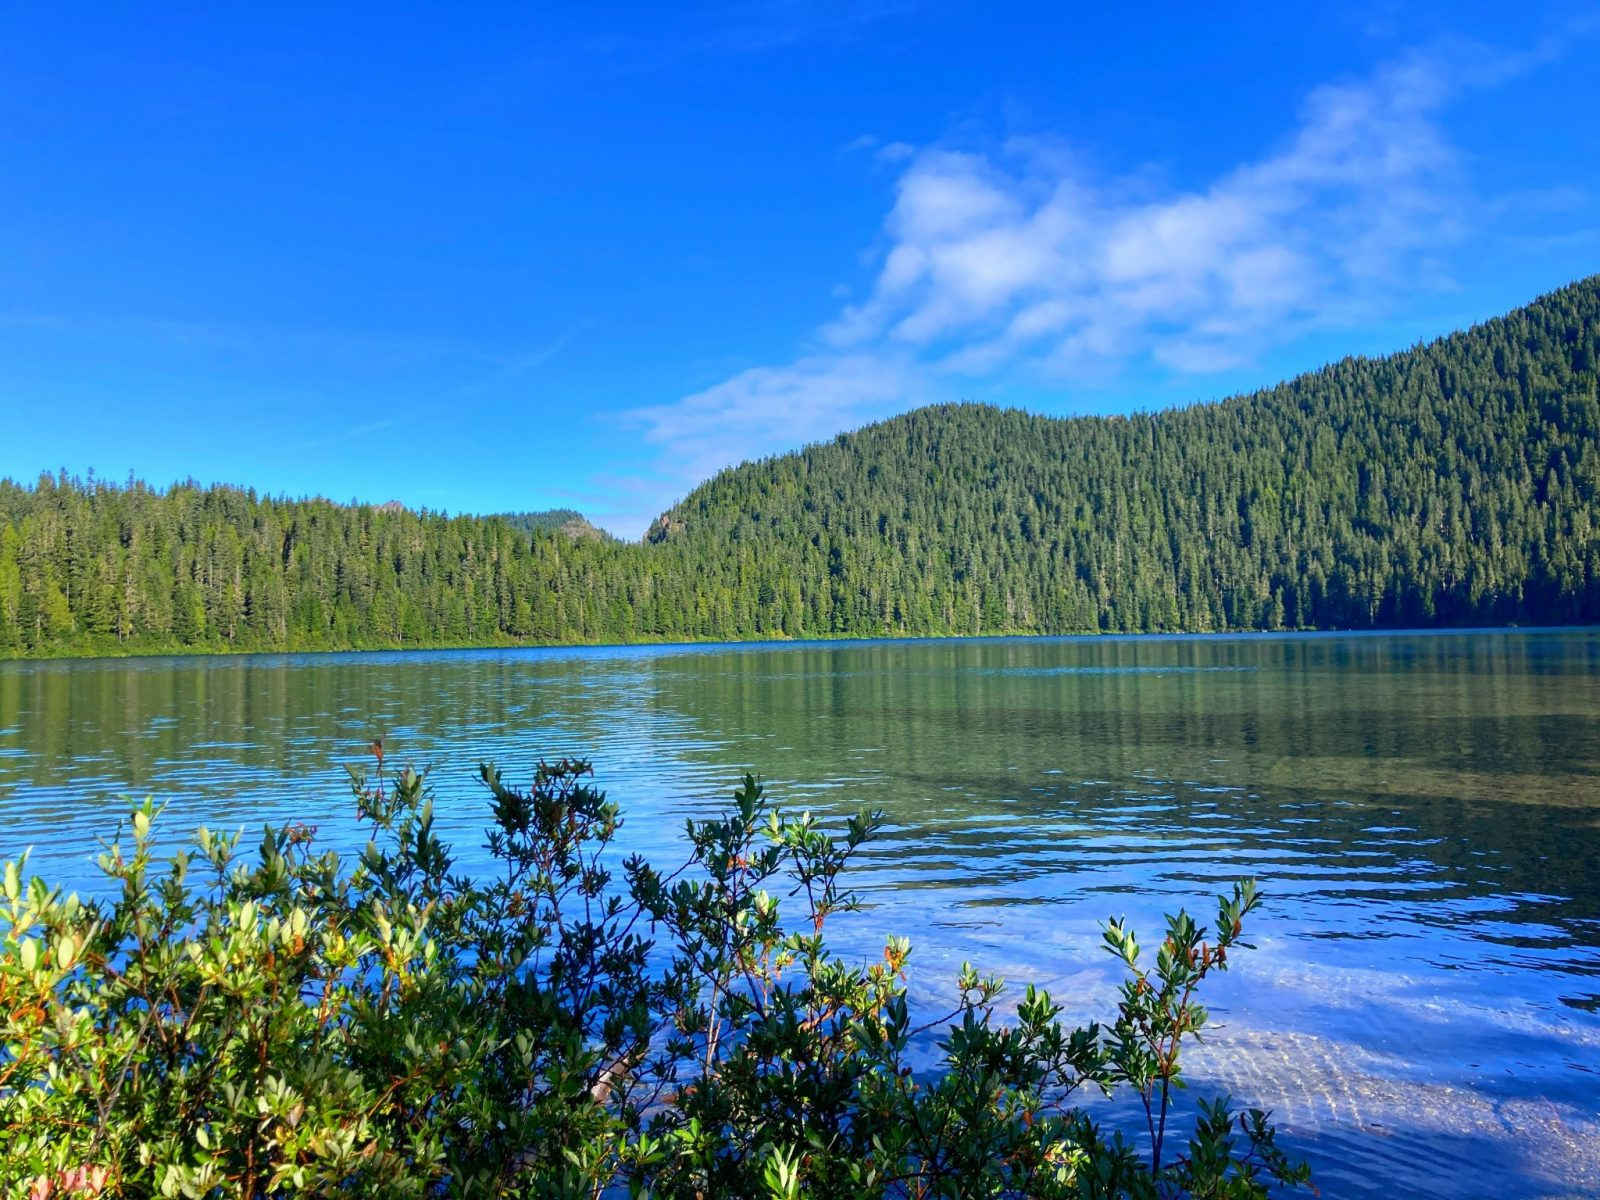 Mowich Lake, a clear alpine lake, is surrounded by forested hillsides on a sunny day